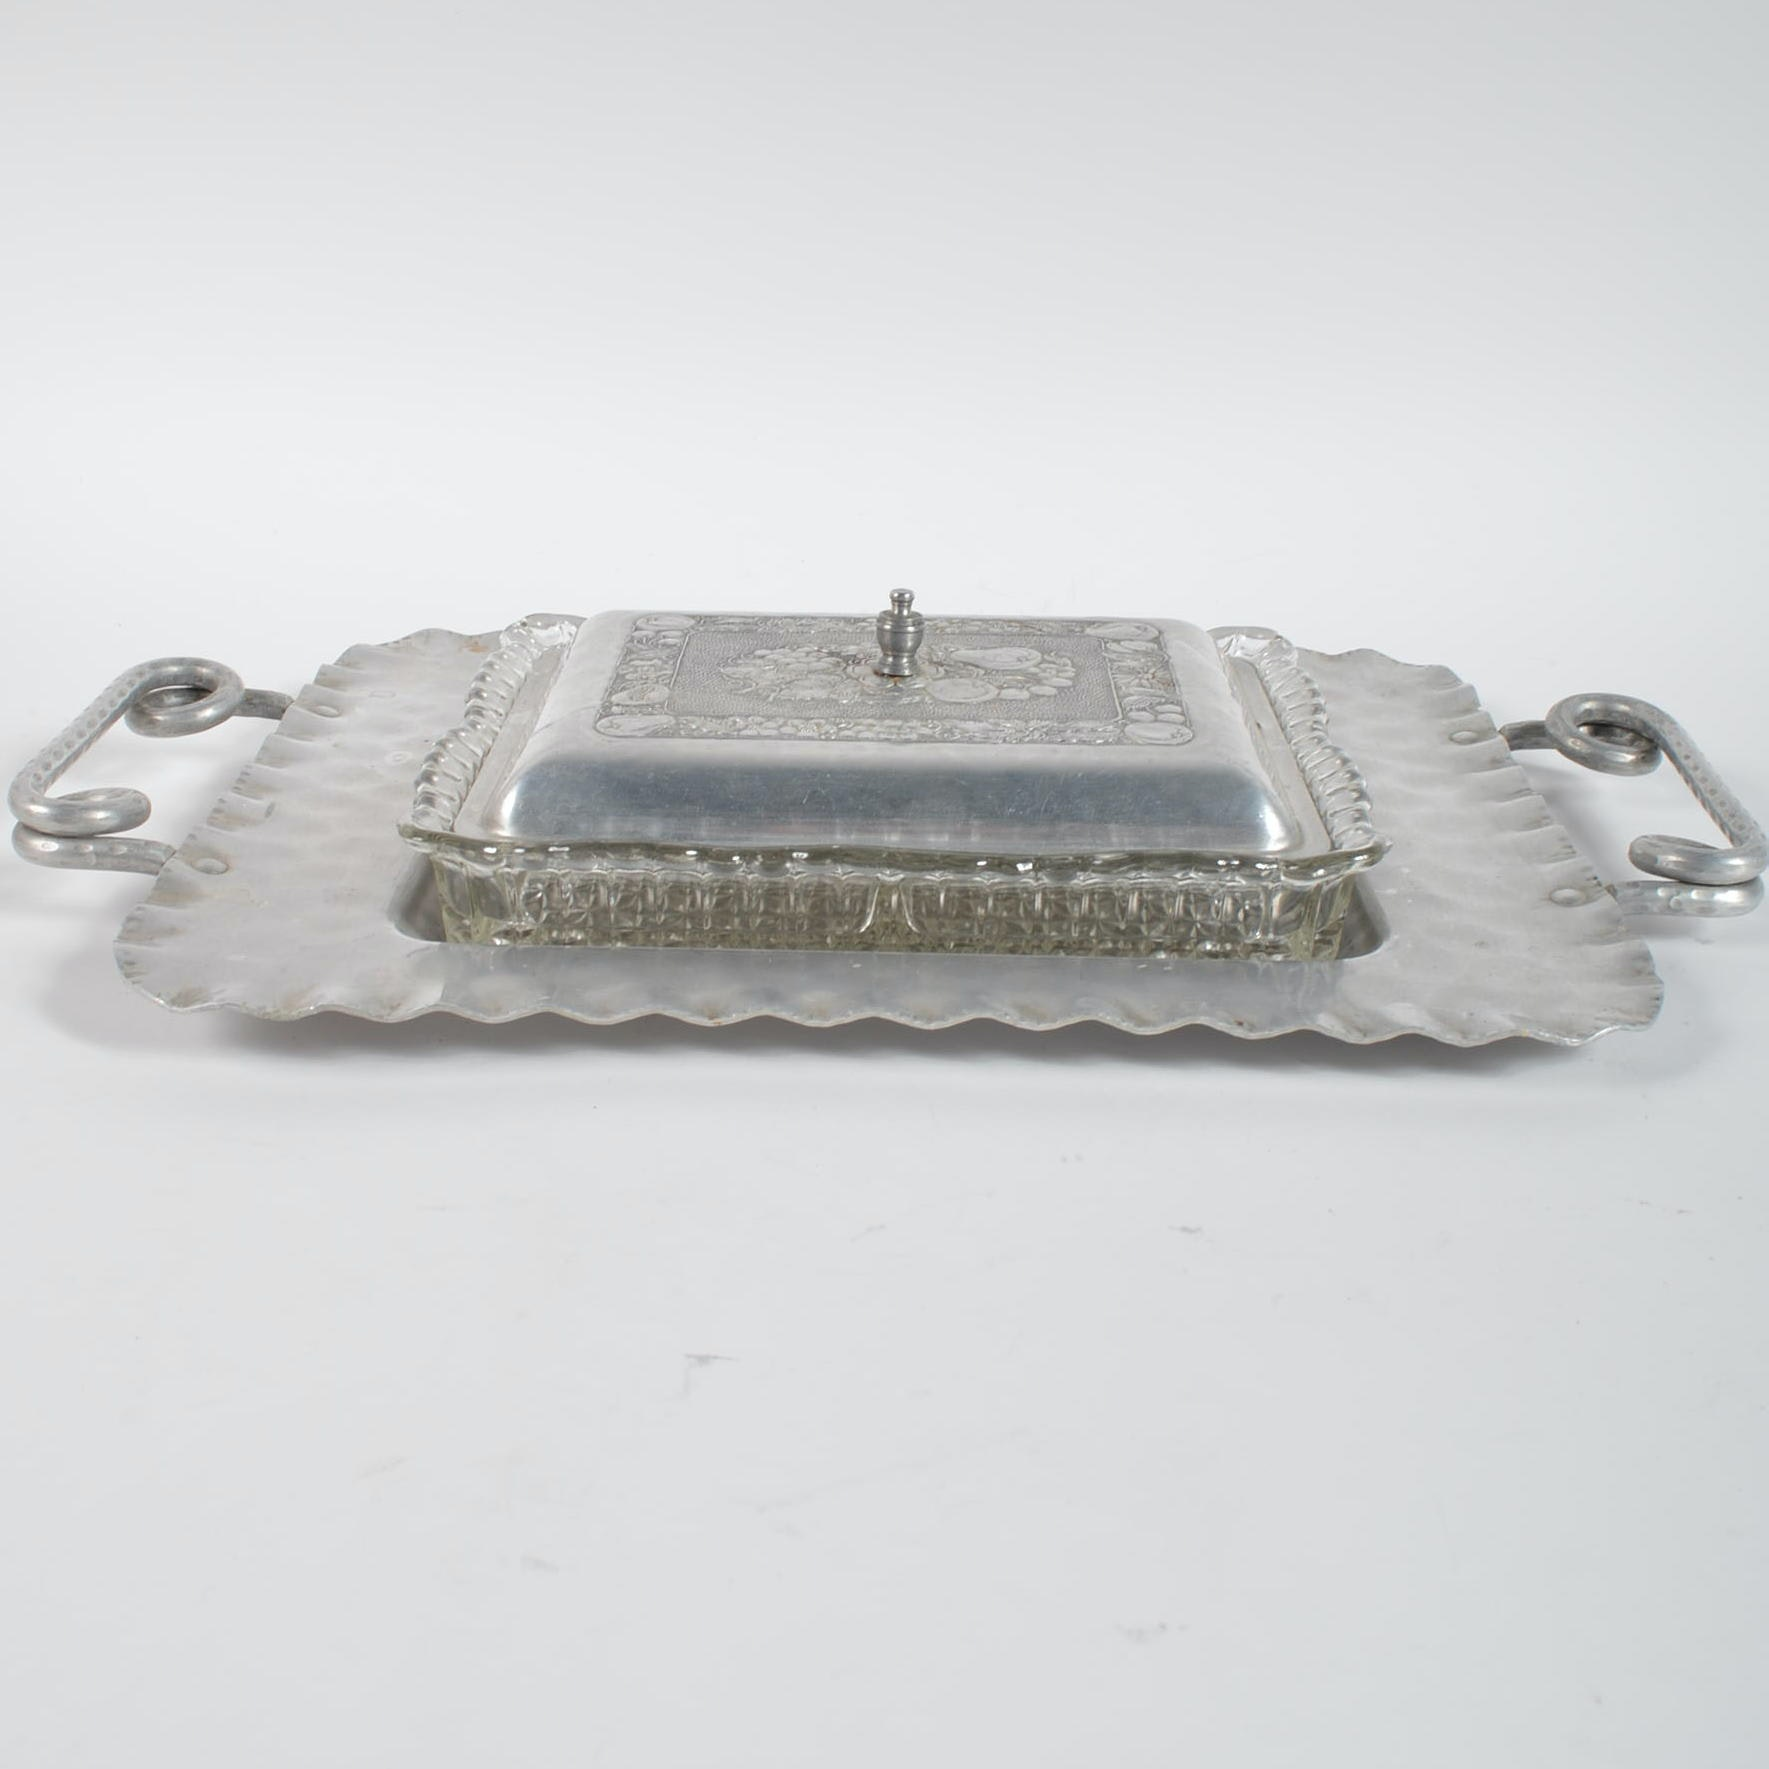 Vintage 1950s Cromwell Hand Wrought Aluminum Tray with Condiment Server